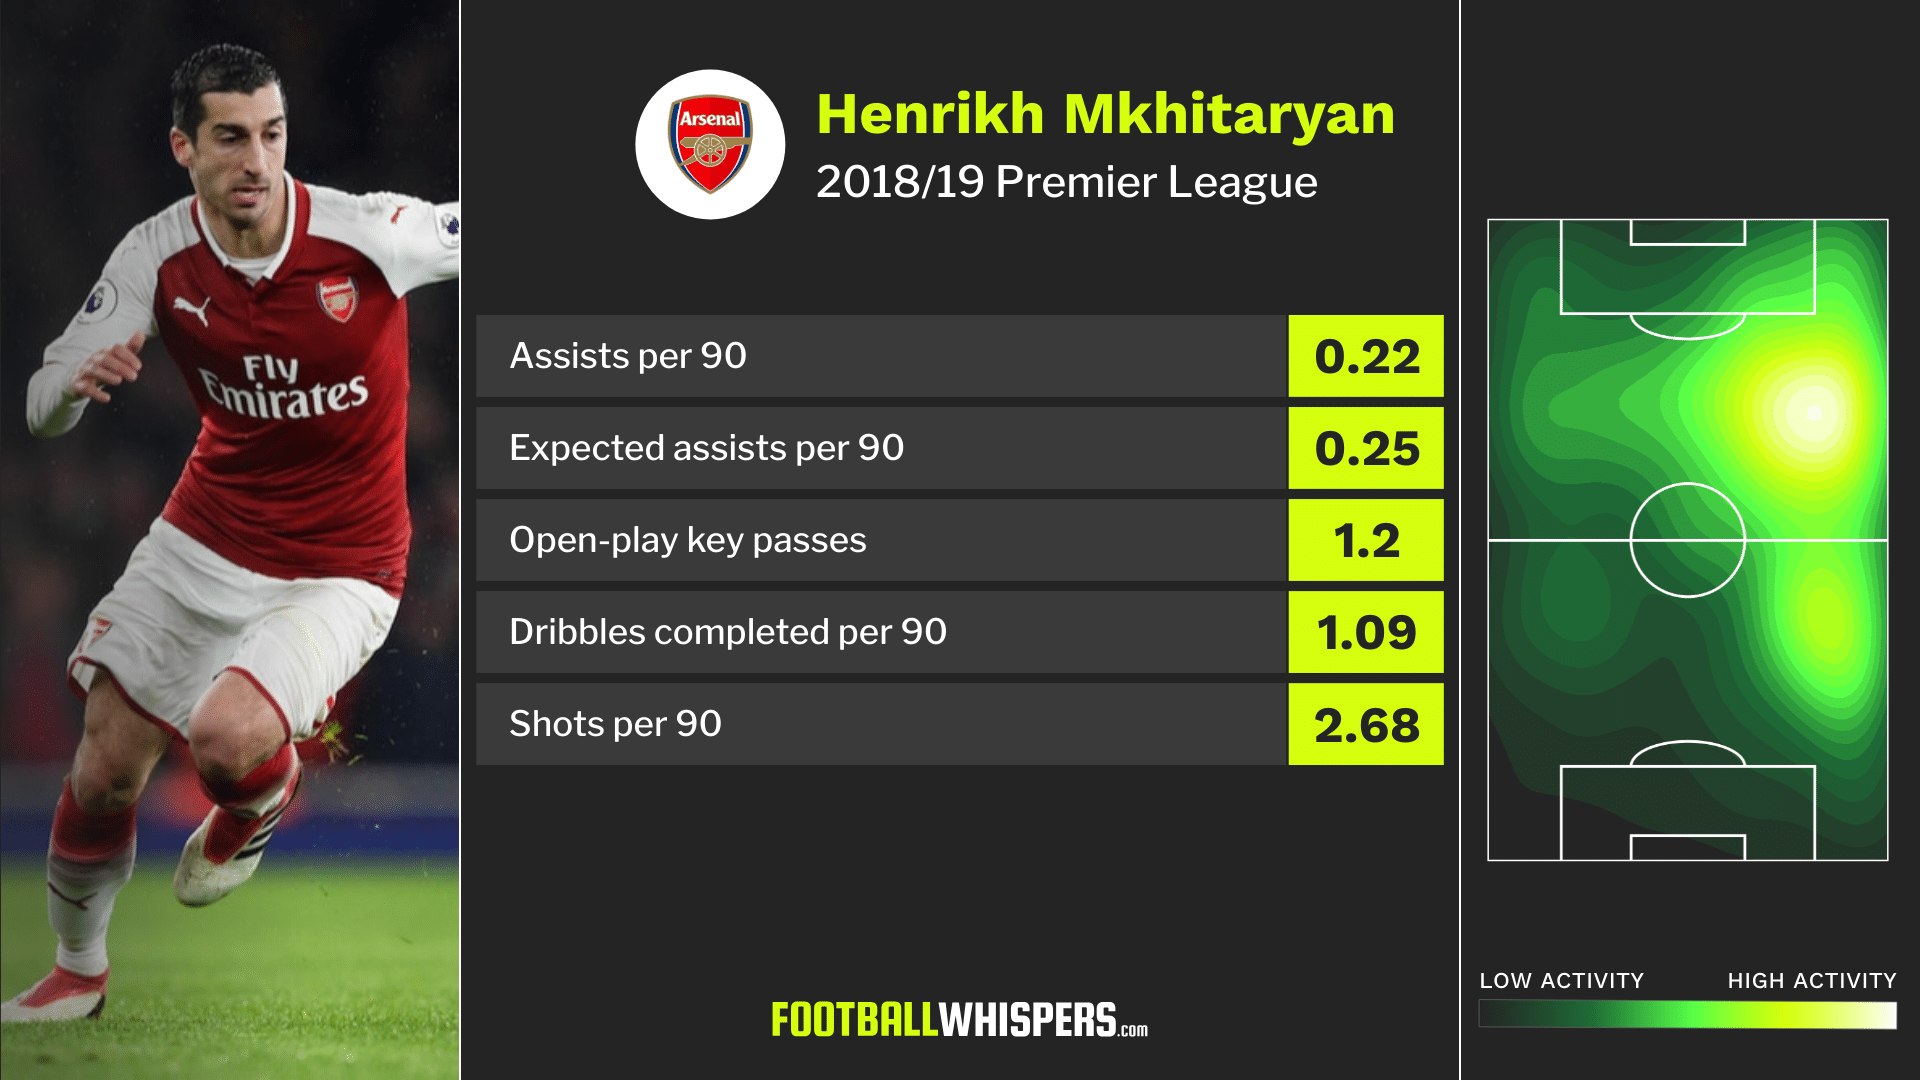 Arsenal winger Henrikh Mkhitaryan's 2018/19 Premier League stats